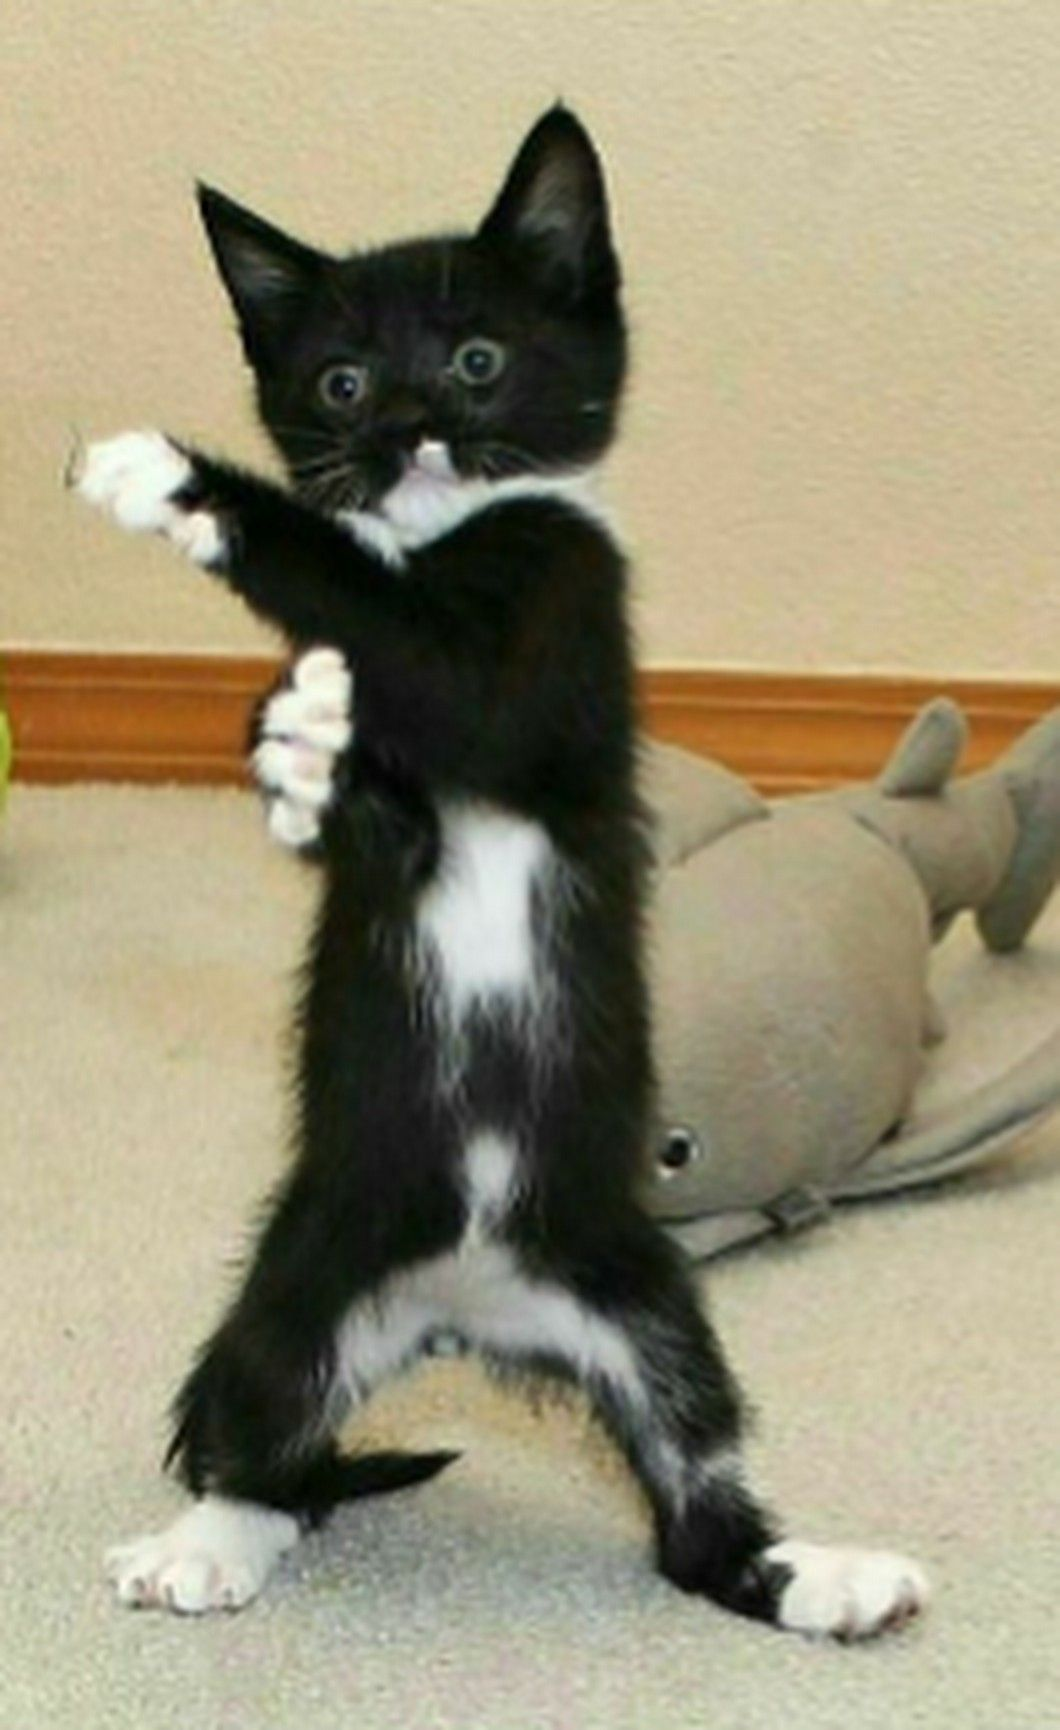 Everybody Was Kung Fu Fighting With Images In 2020 Cats Cute Cats And Kittens Kittens Cutest